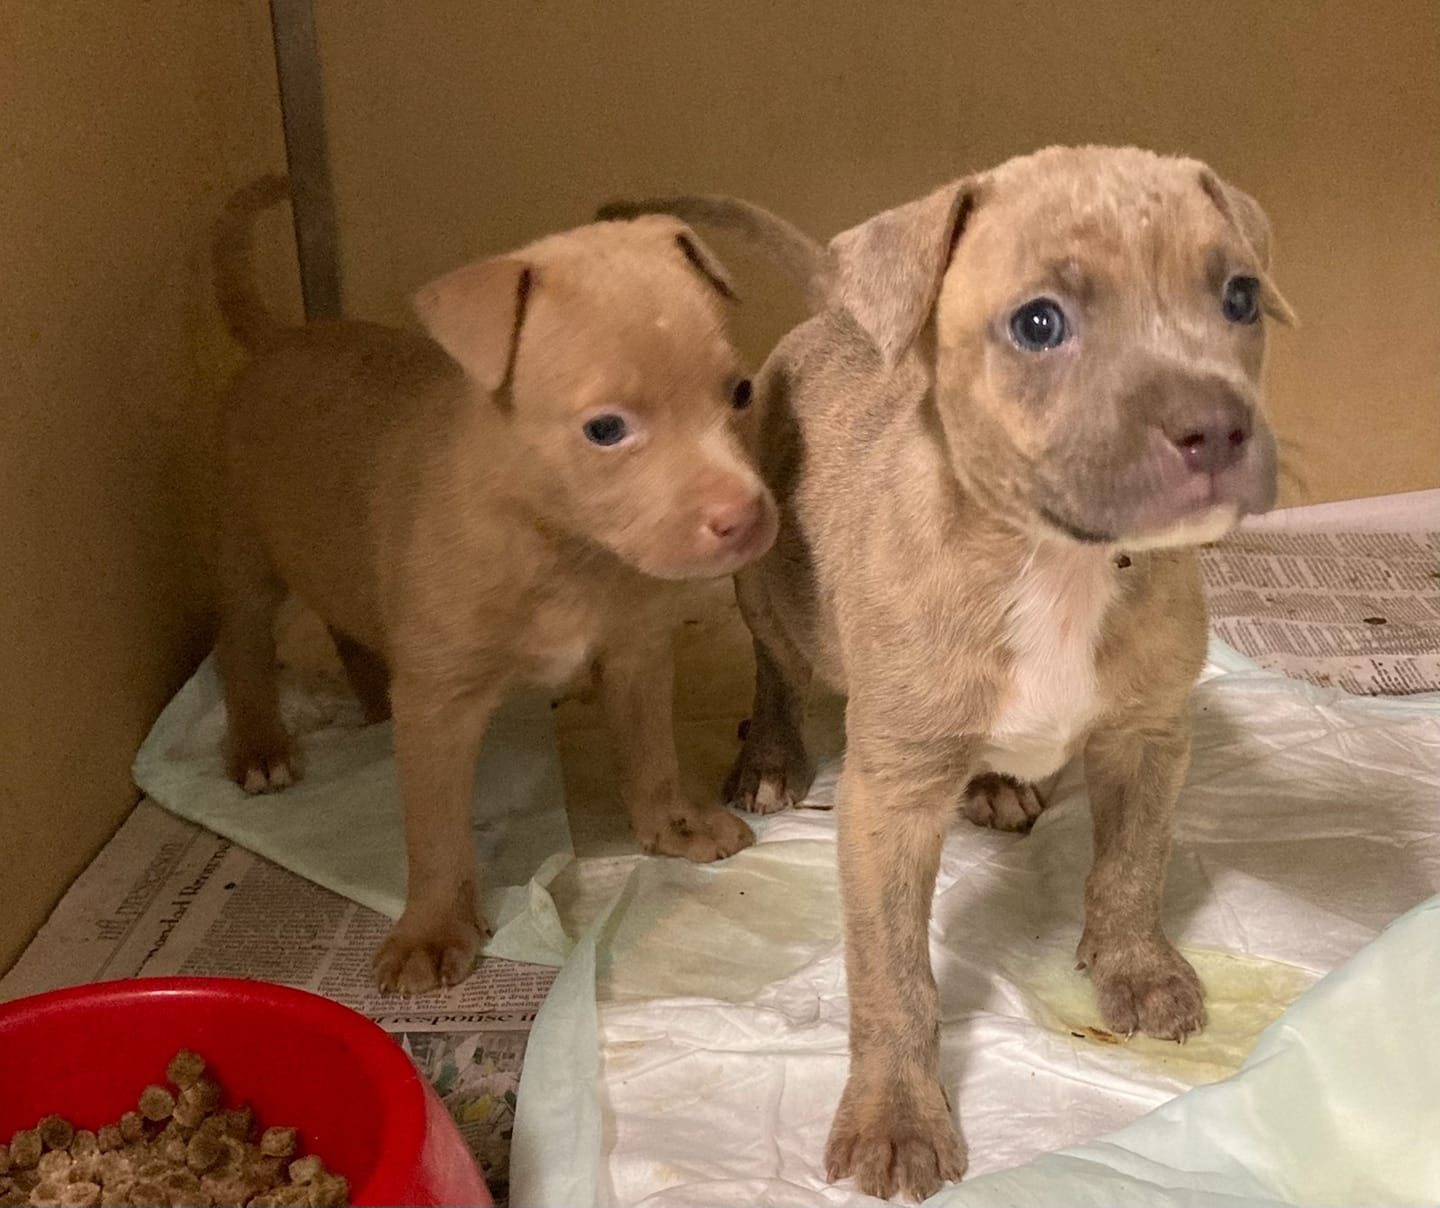 https://wgno.com/news/humane-society-rescue-team-rescues-5-puppies-from-65-foot-well/